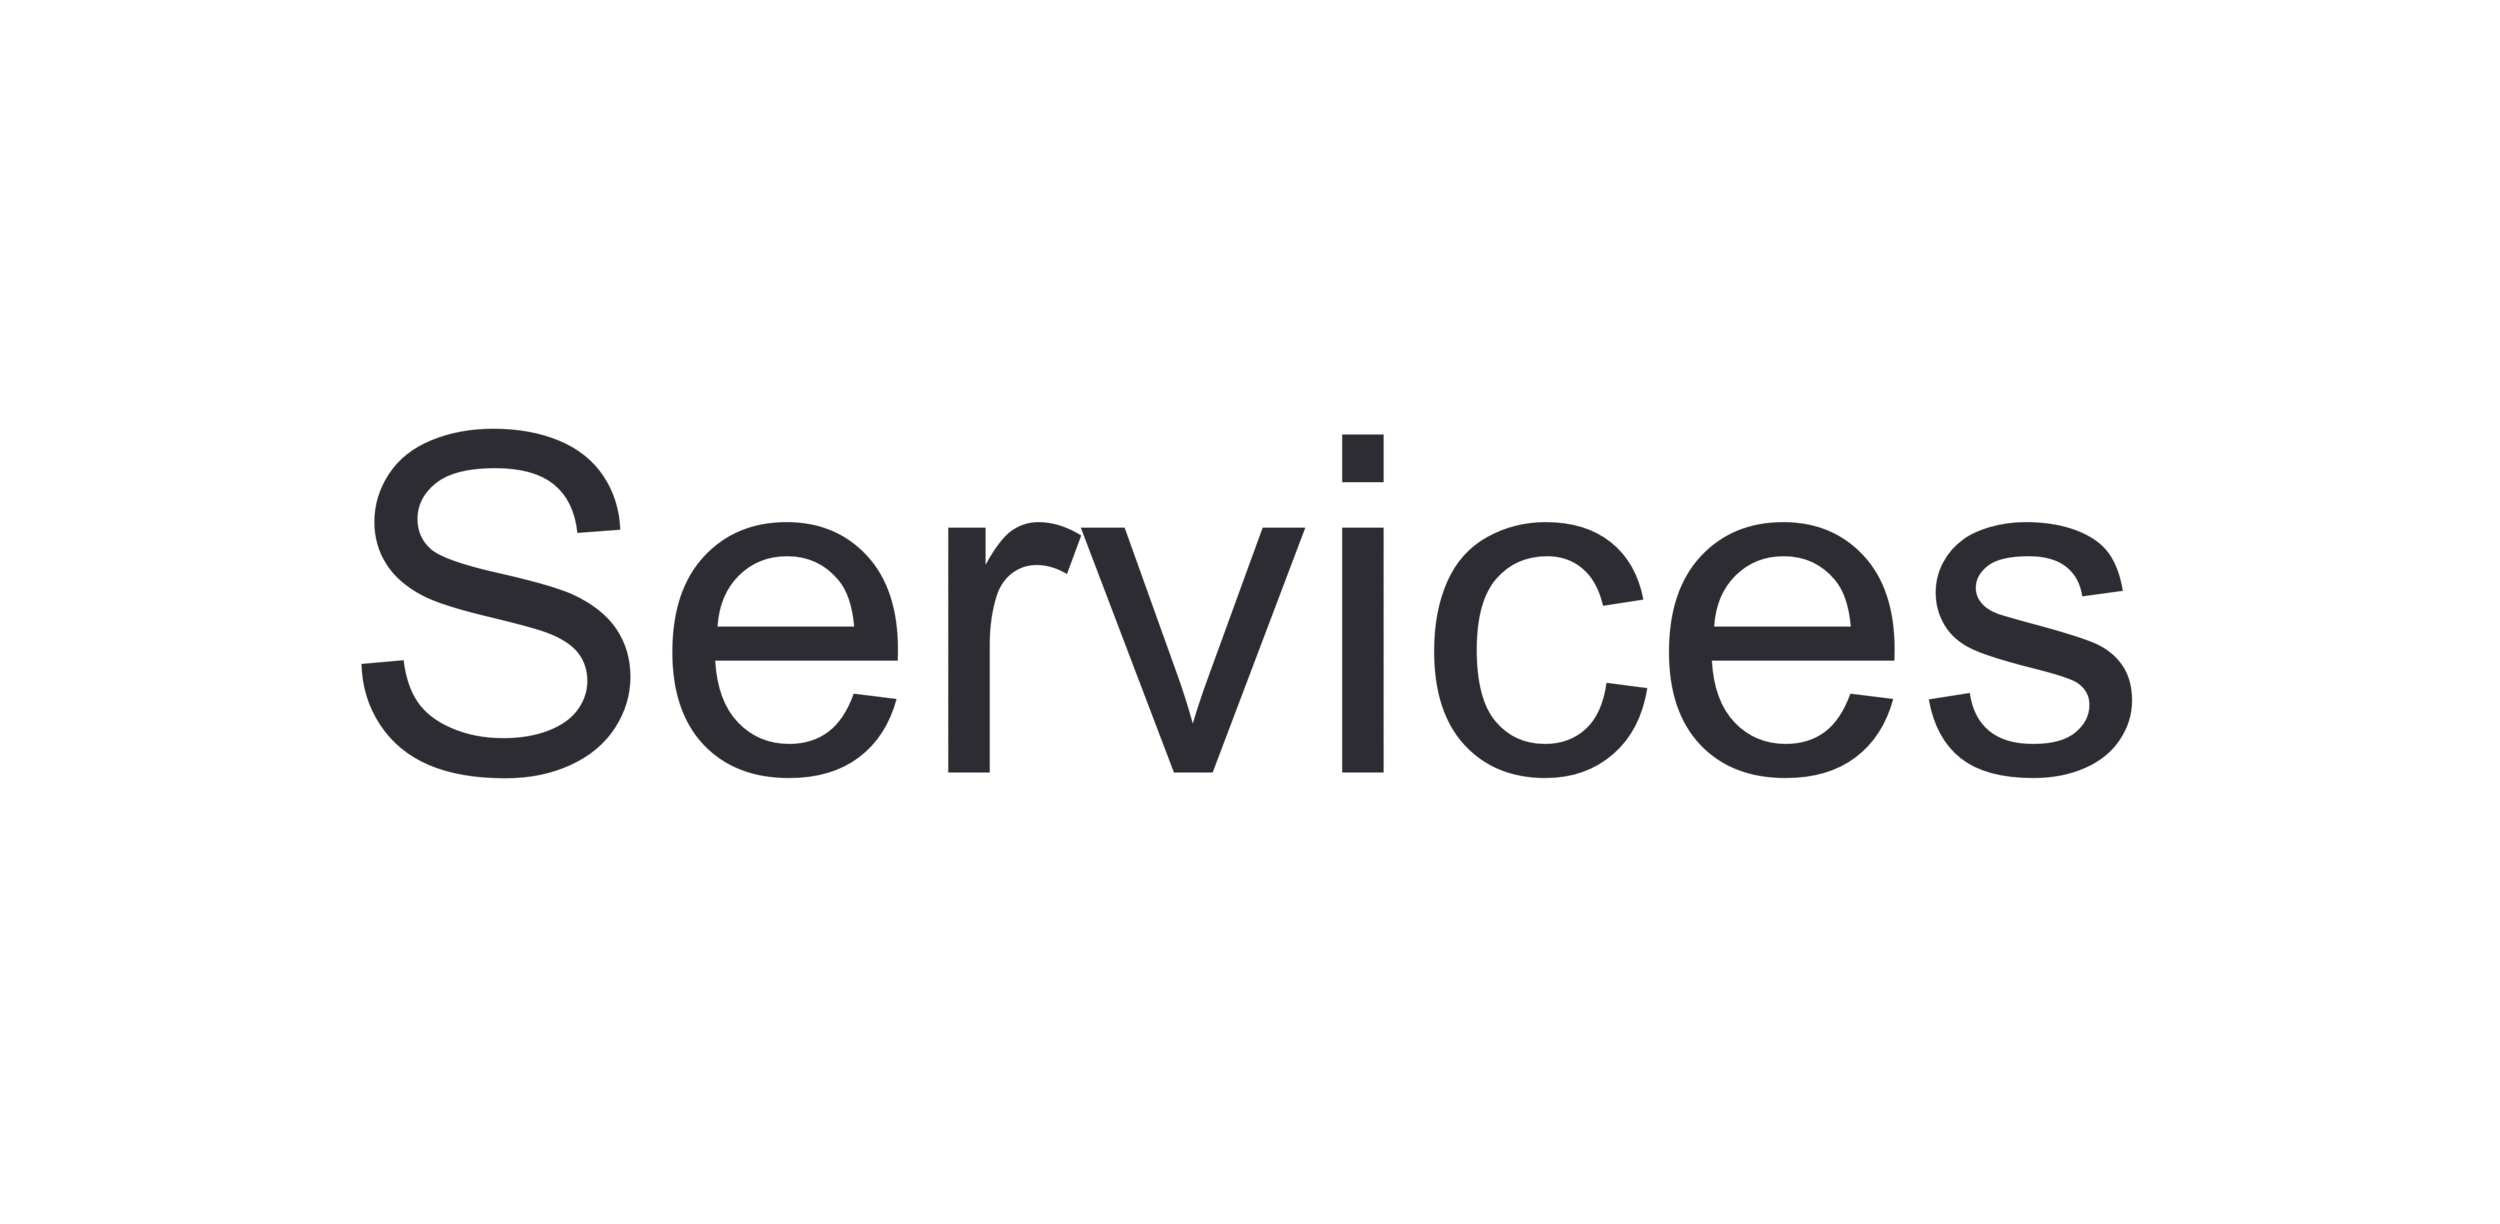 Services-logo.png